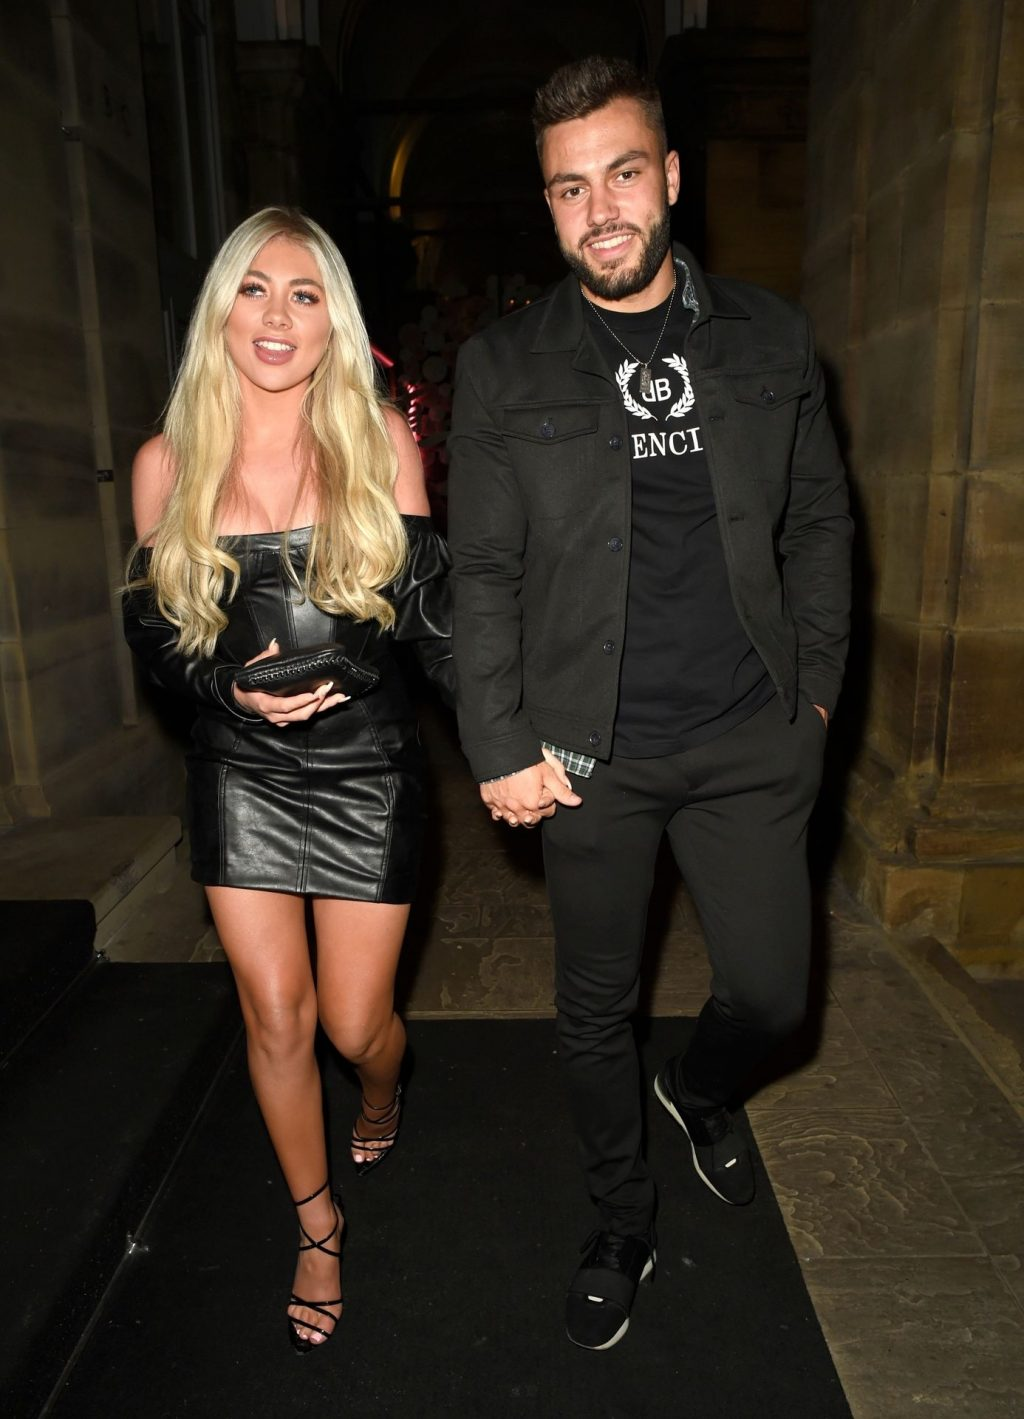 Paige Turley and Finley Tapp Enjoy Date Night out at Peter Street Kitchen (67 Photos)